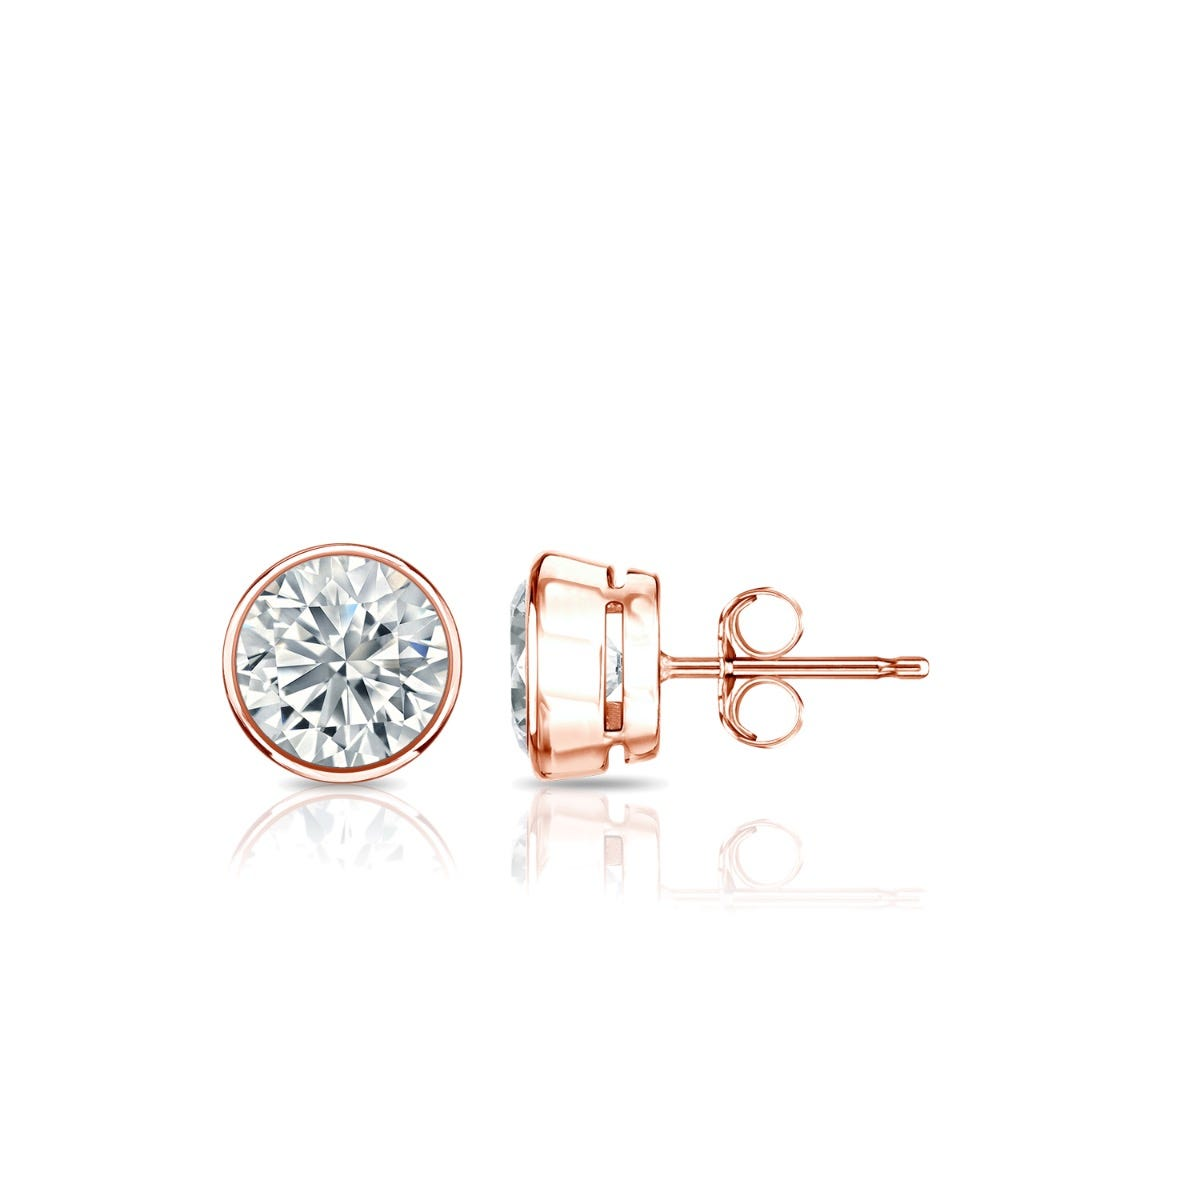 Diamond Round Bezel-Set 5/8ctw. Solitaire Stud (IJ-I1) Earrings in 14K Rose Gold